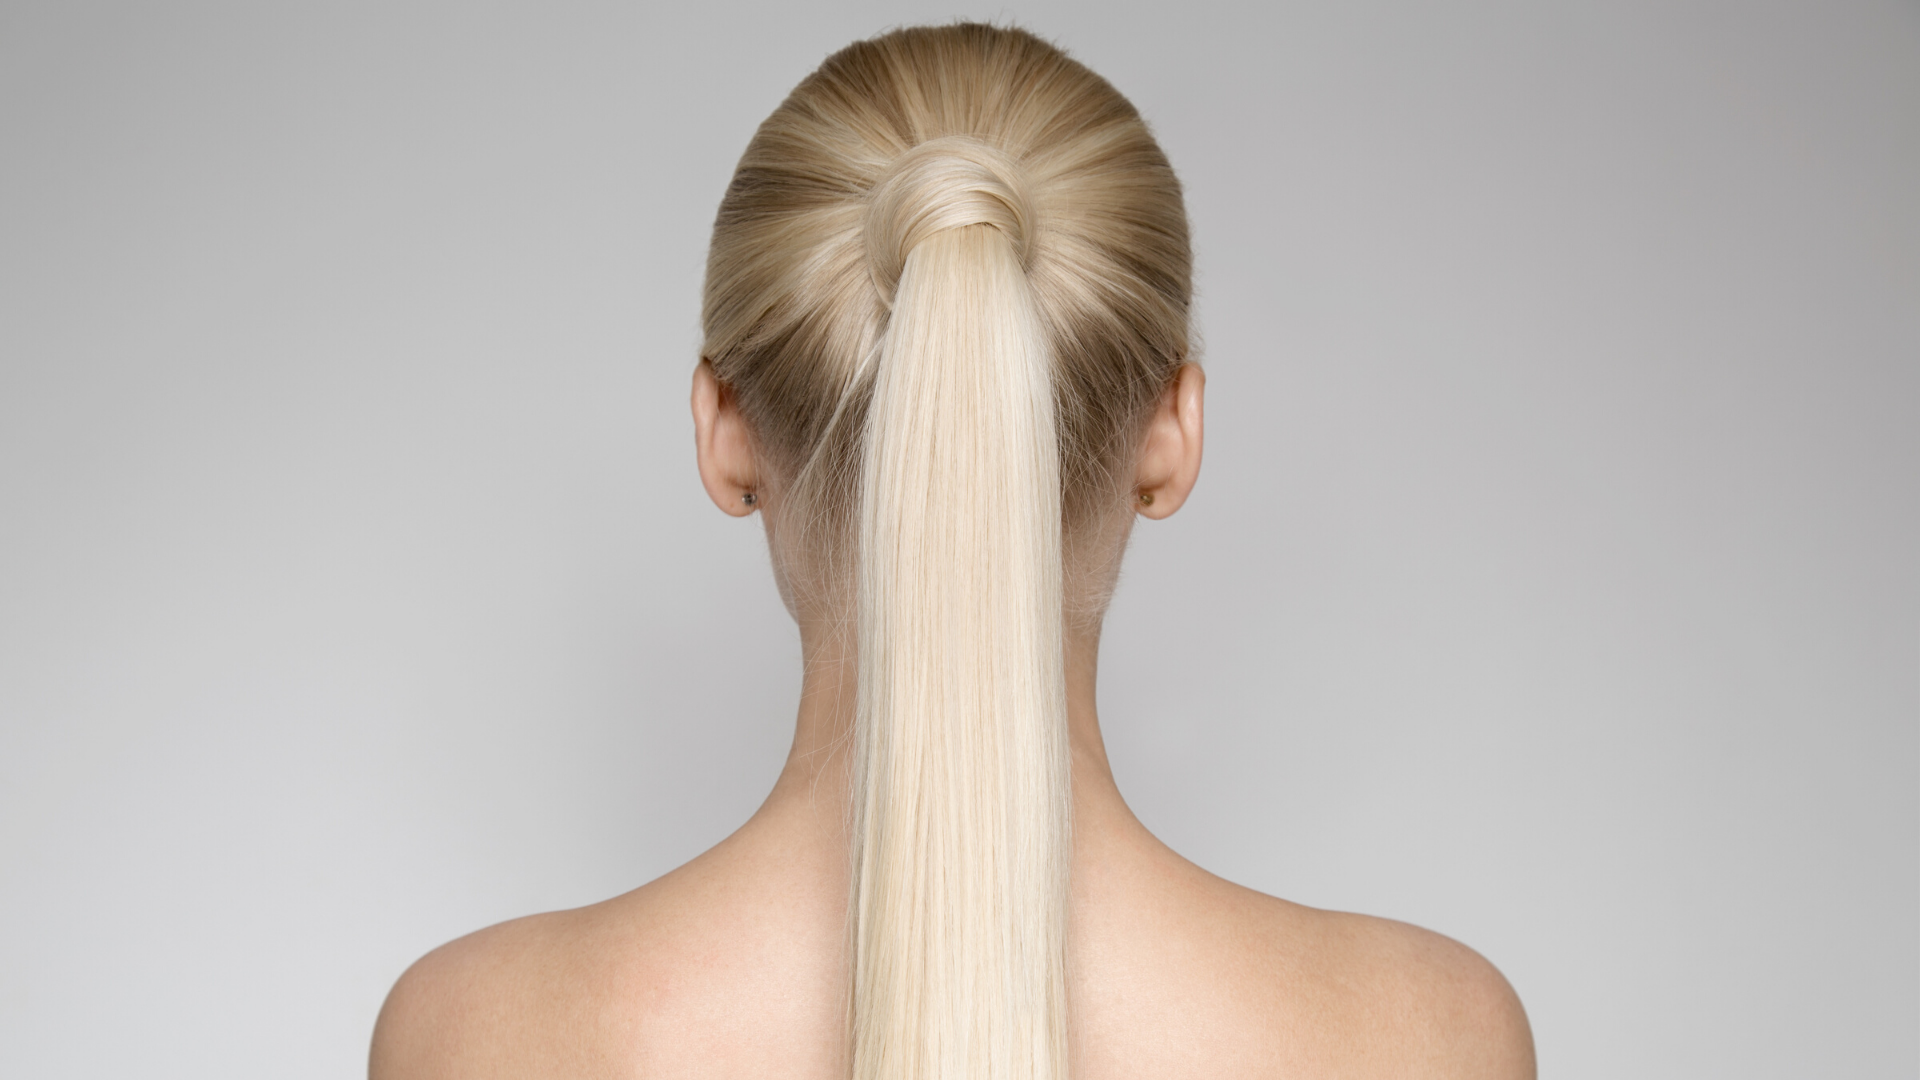 Style Ideas for Long Hair: The Knotted Pony